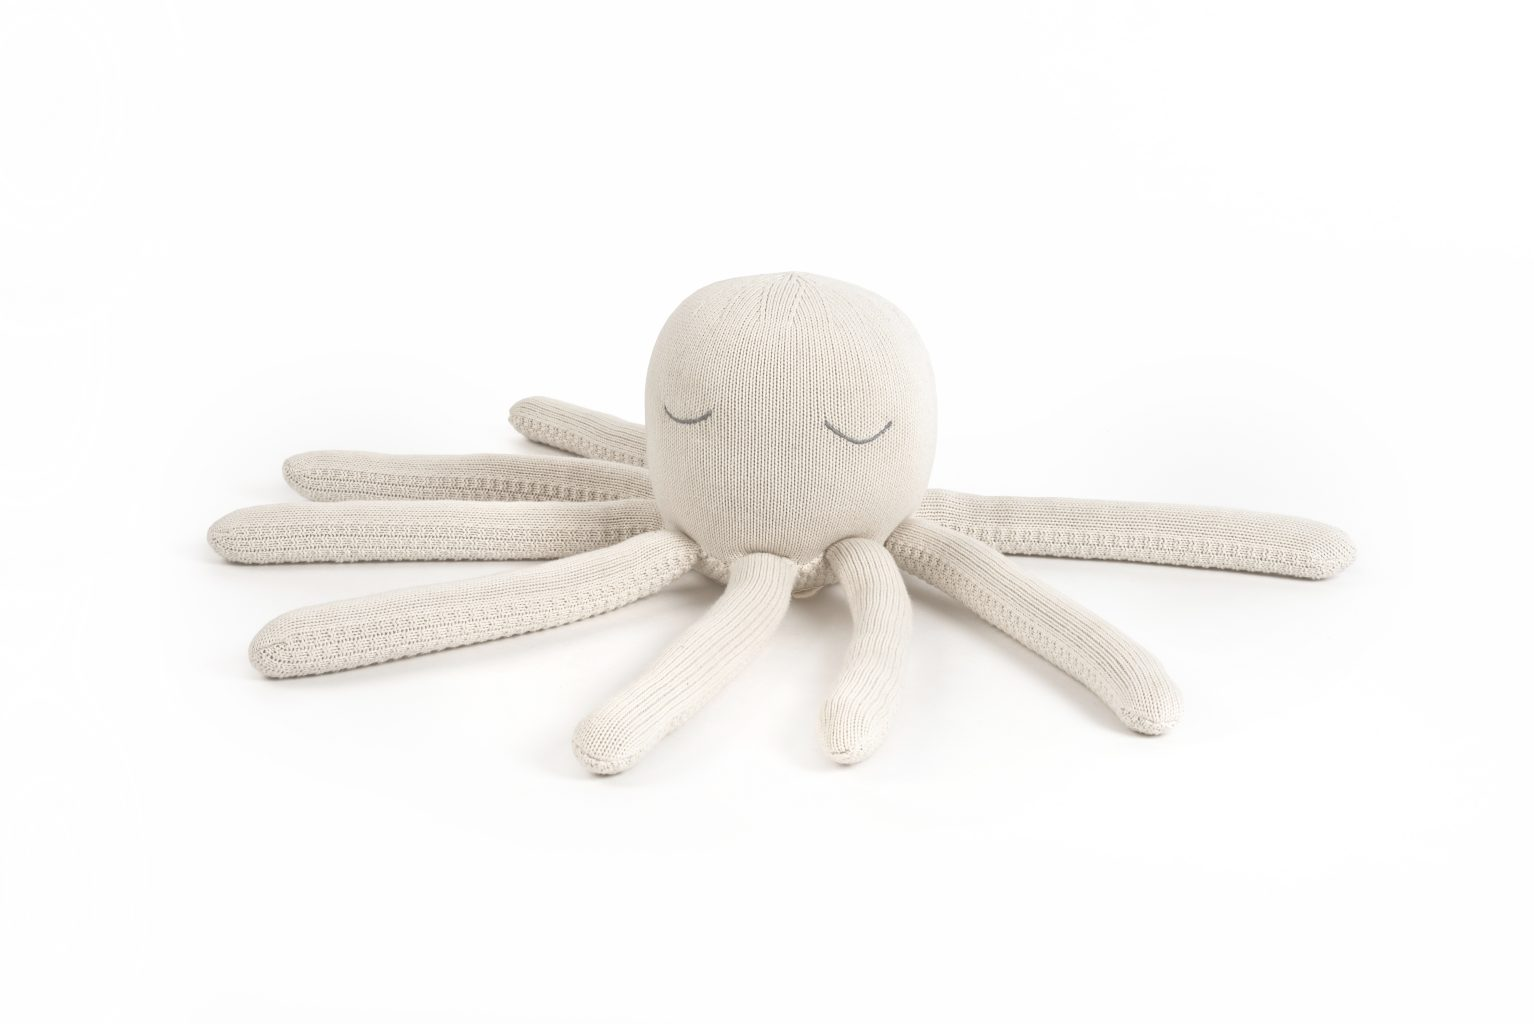 Octopus toy, Cream